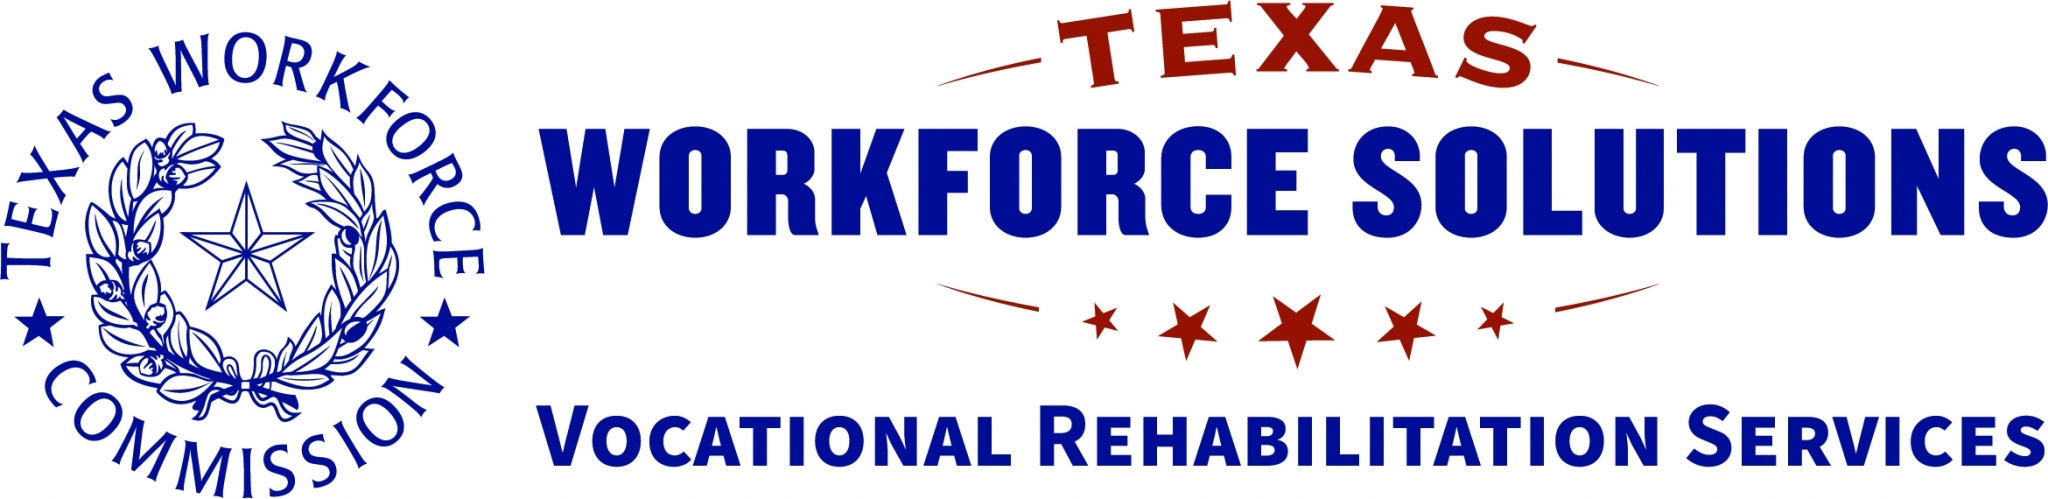 Texas Workforce Solutions- Vocational Rehabilitation Services